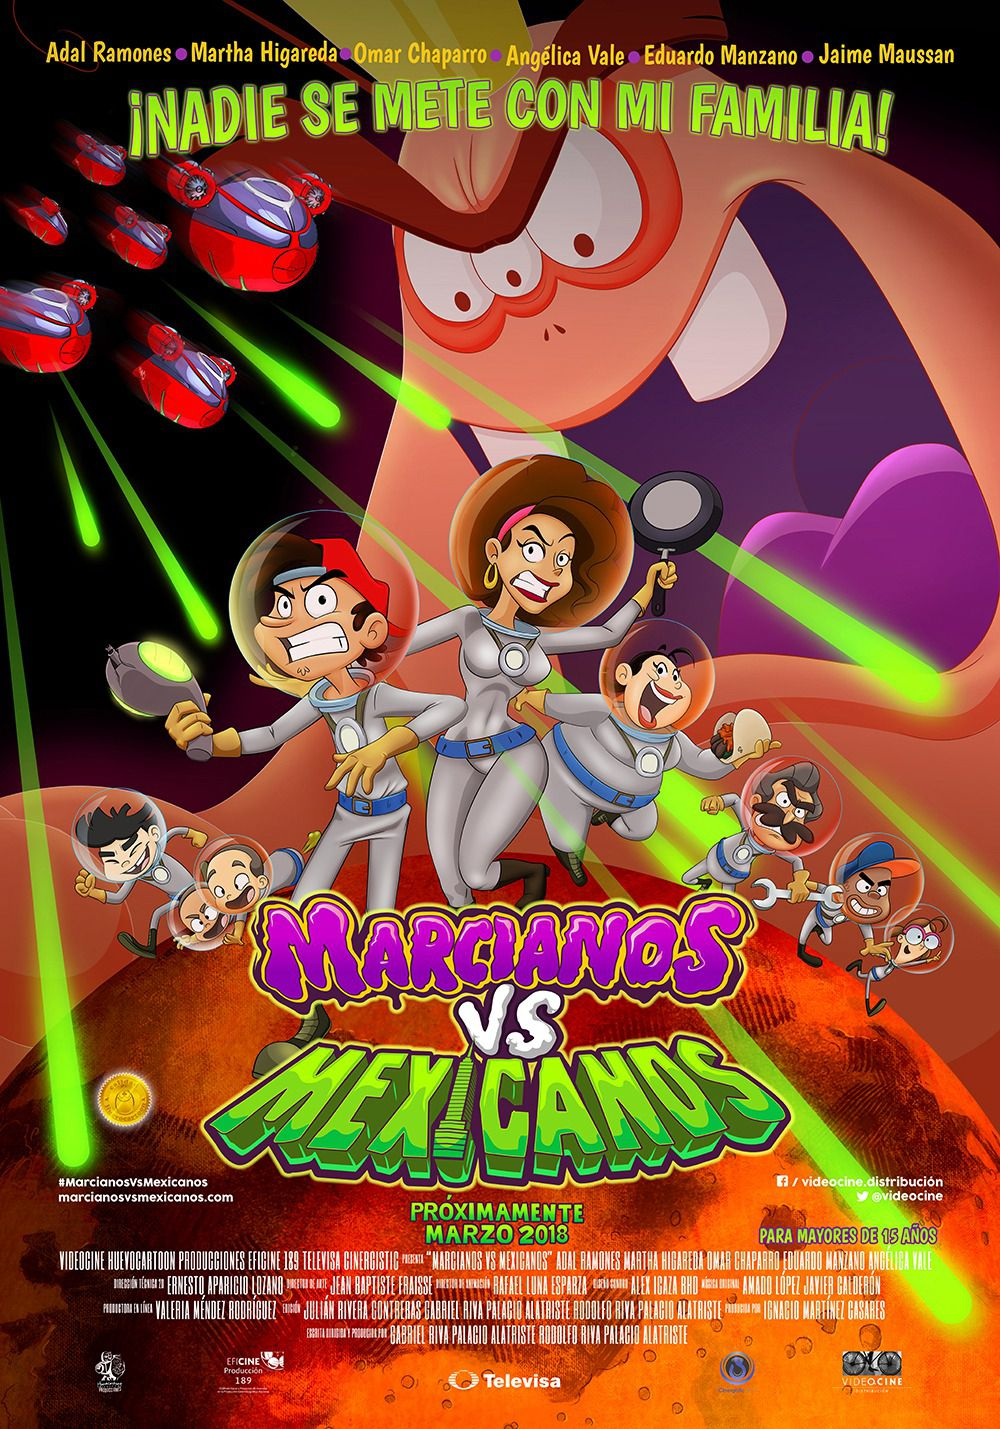 Marcianos vs Mexicanos - animated film poster 2018